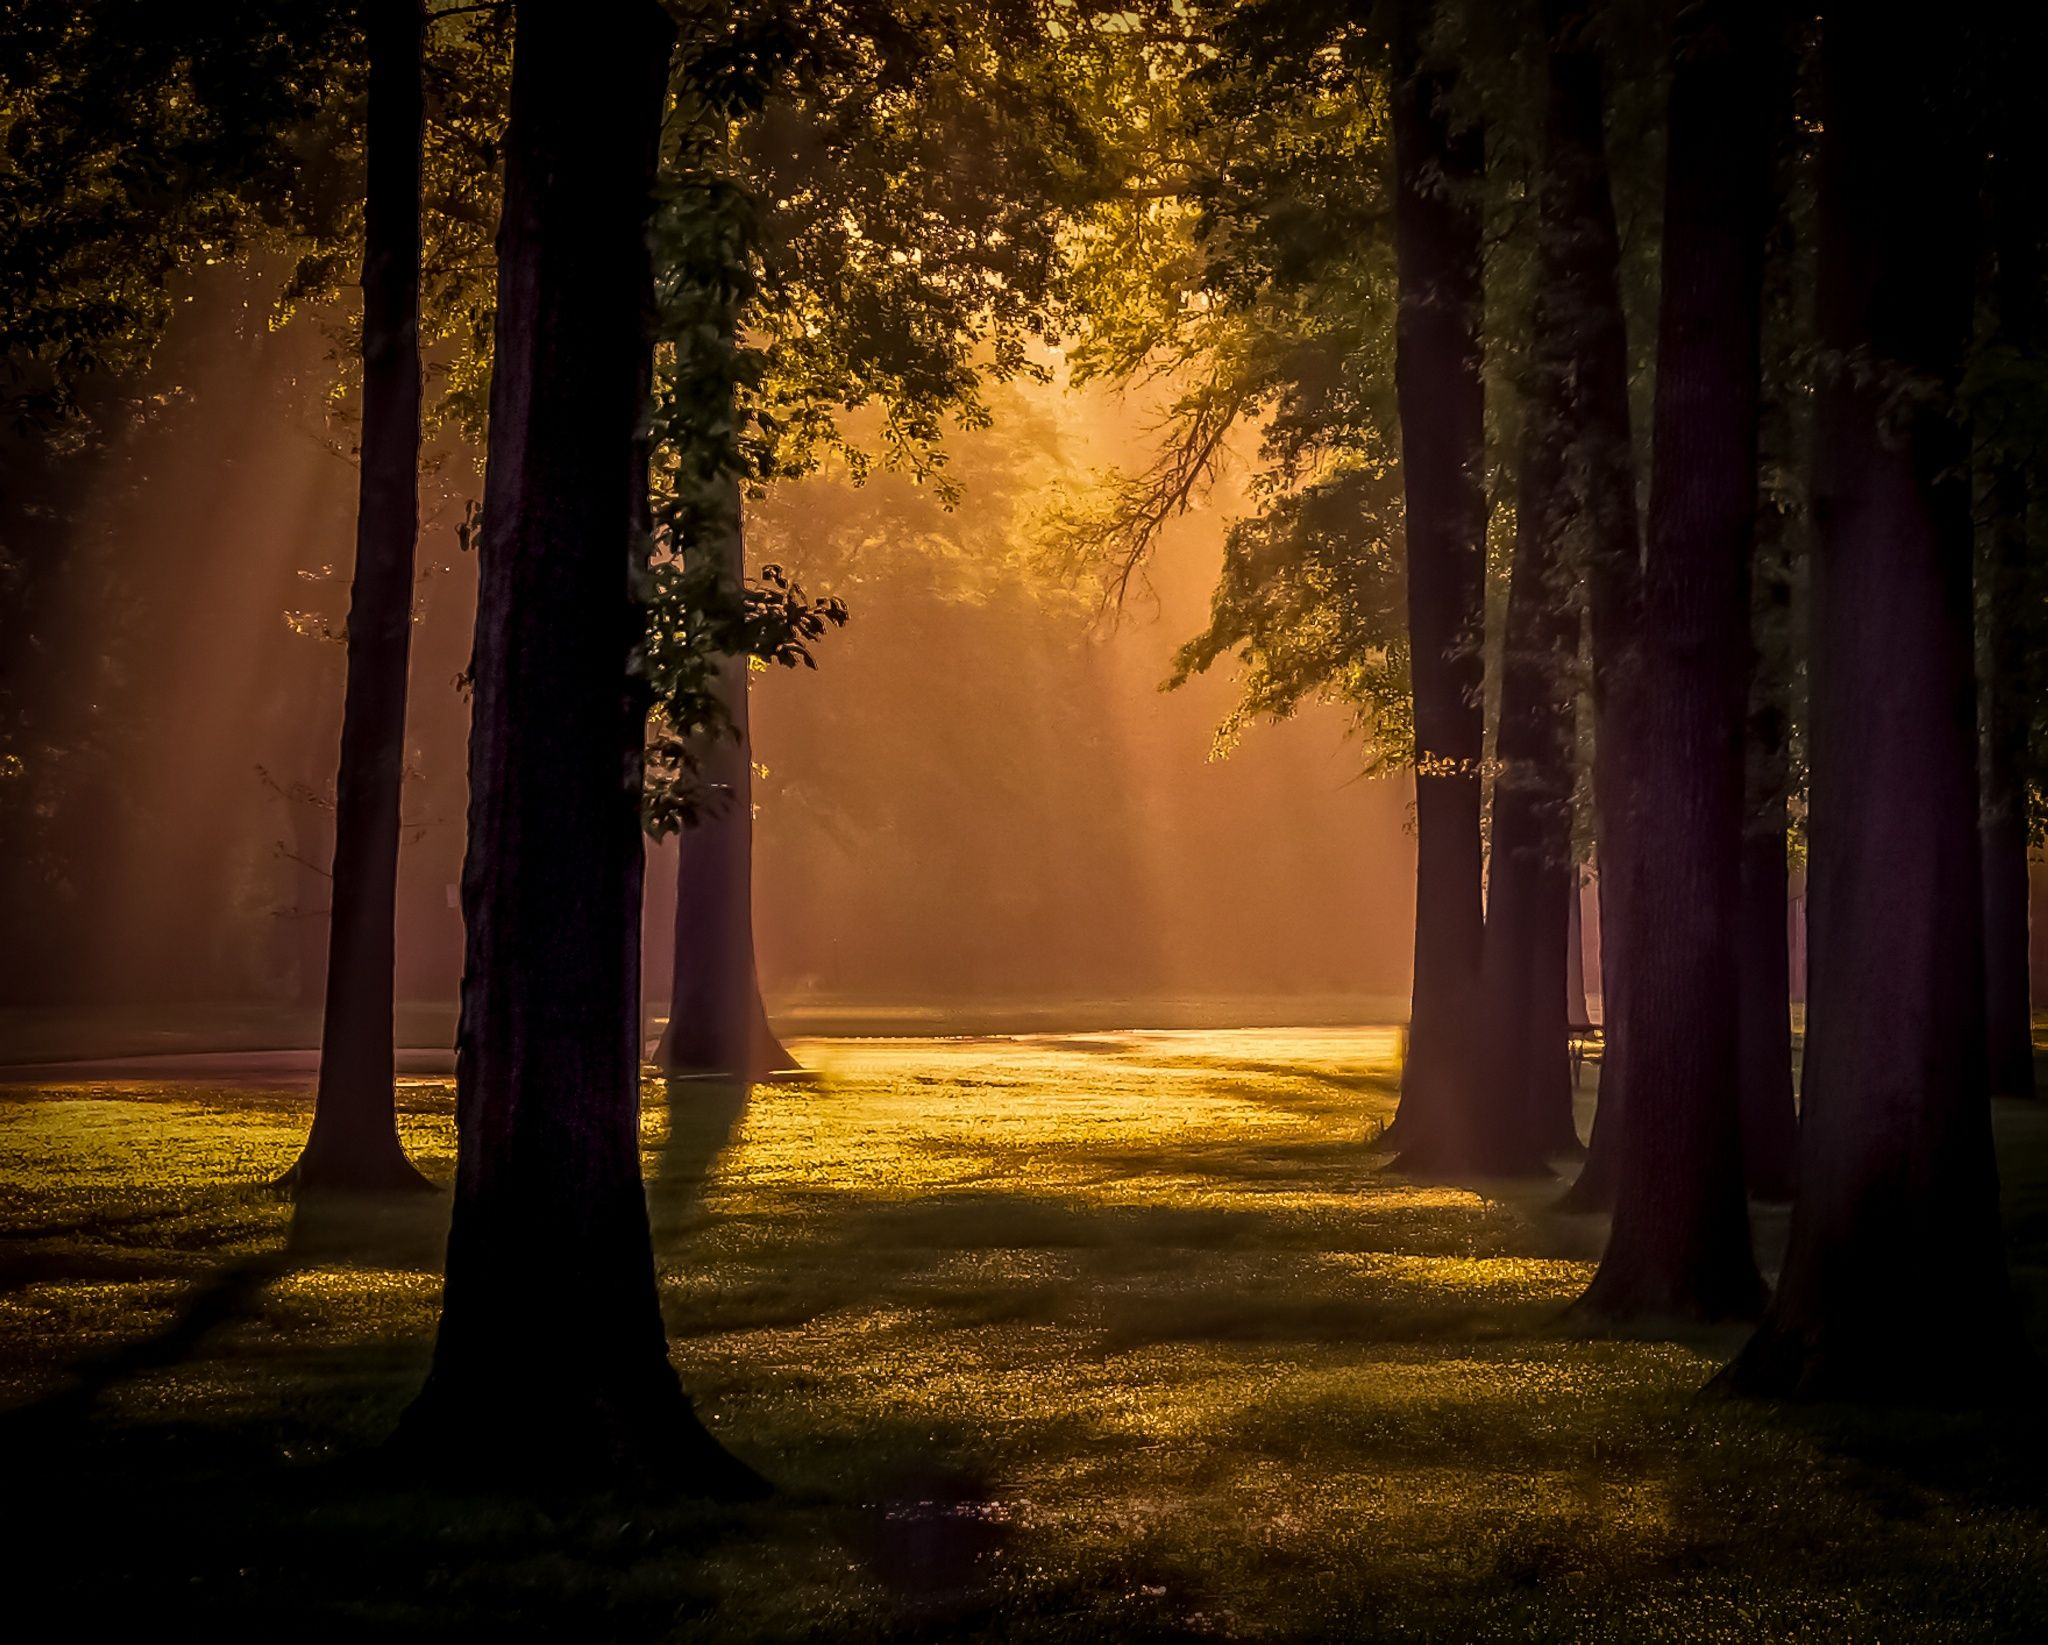 Photograph Morning Glow by Gil Druen on 500px